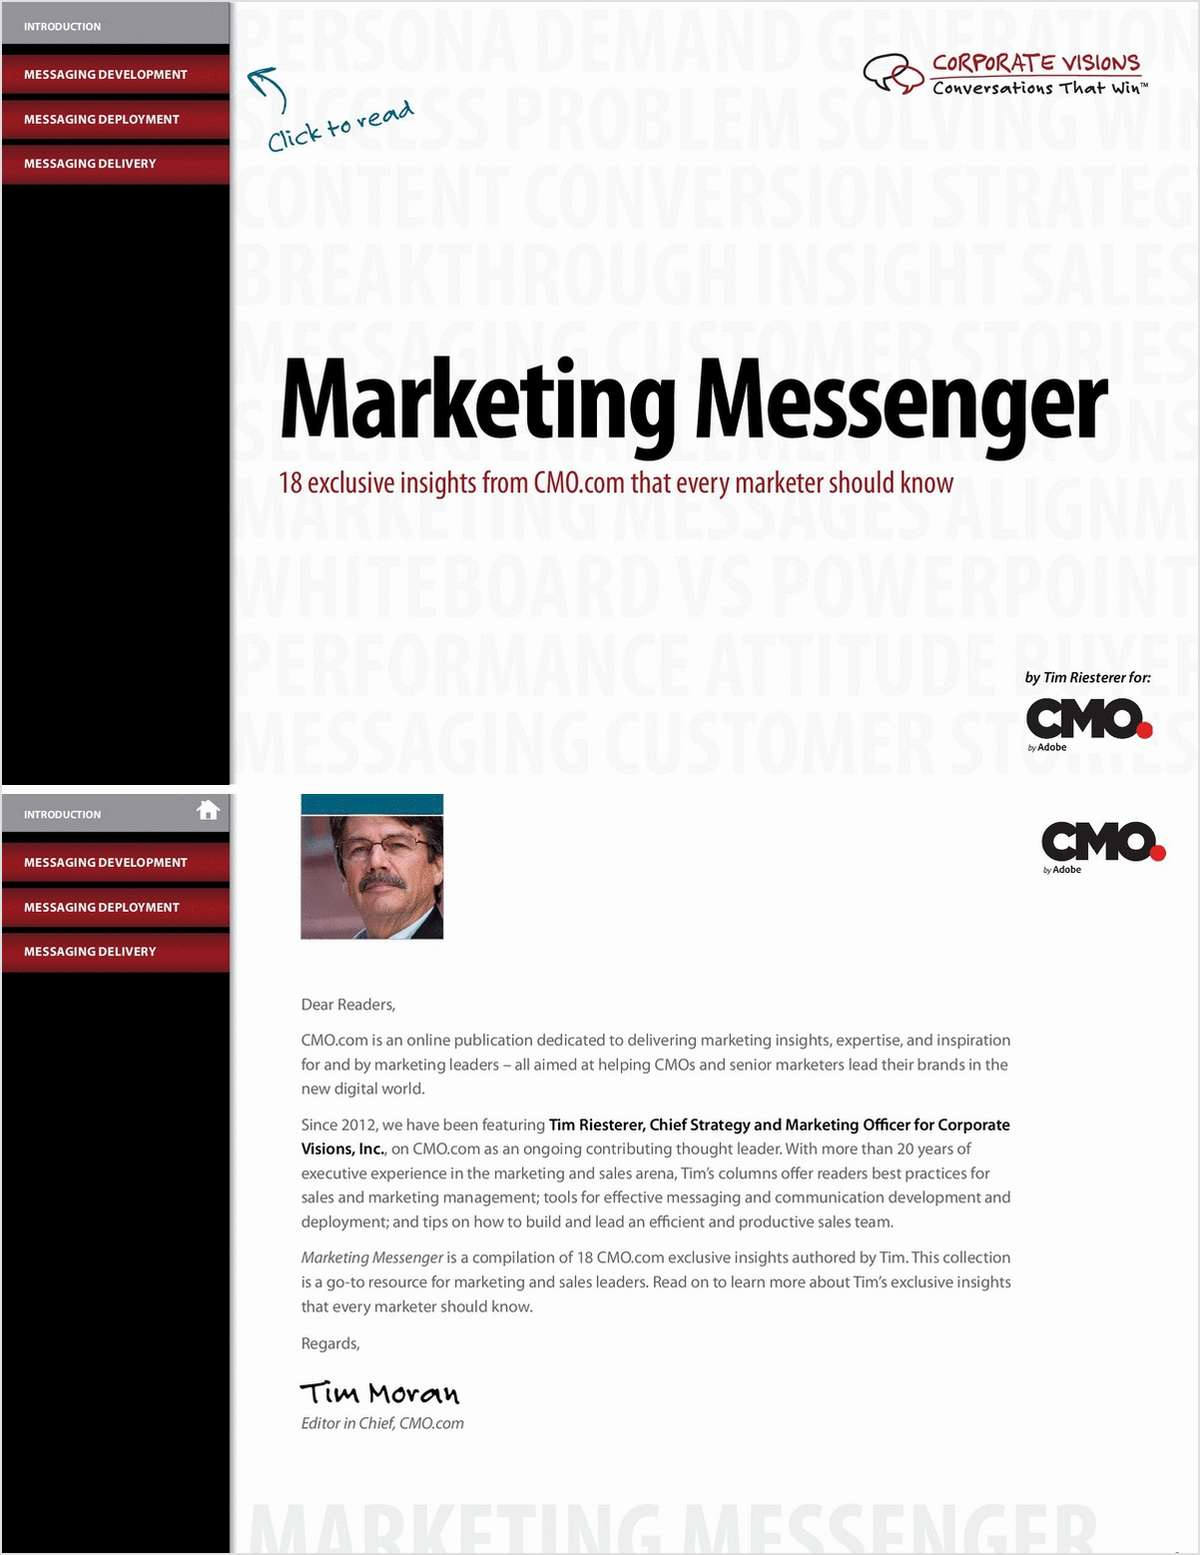 Marketing Messenger: 18 Exclusive Insights From CMO.com That Every Marketer Should Know